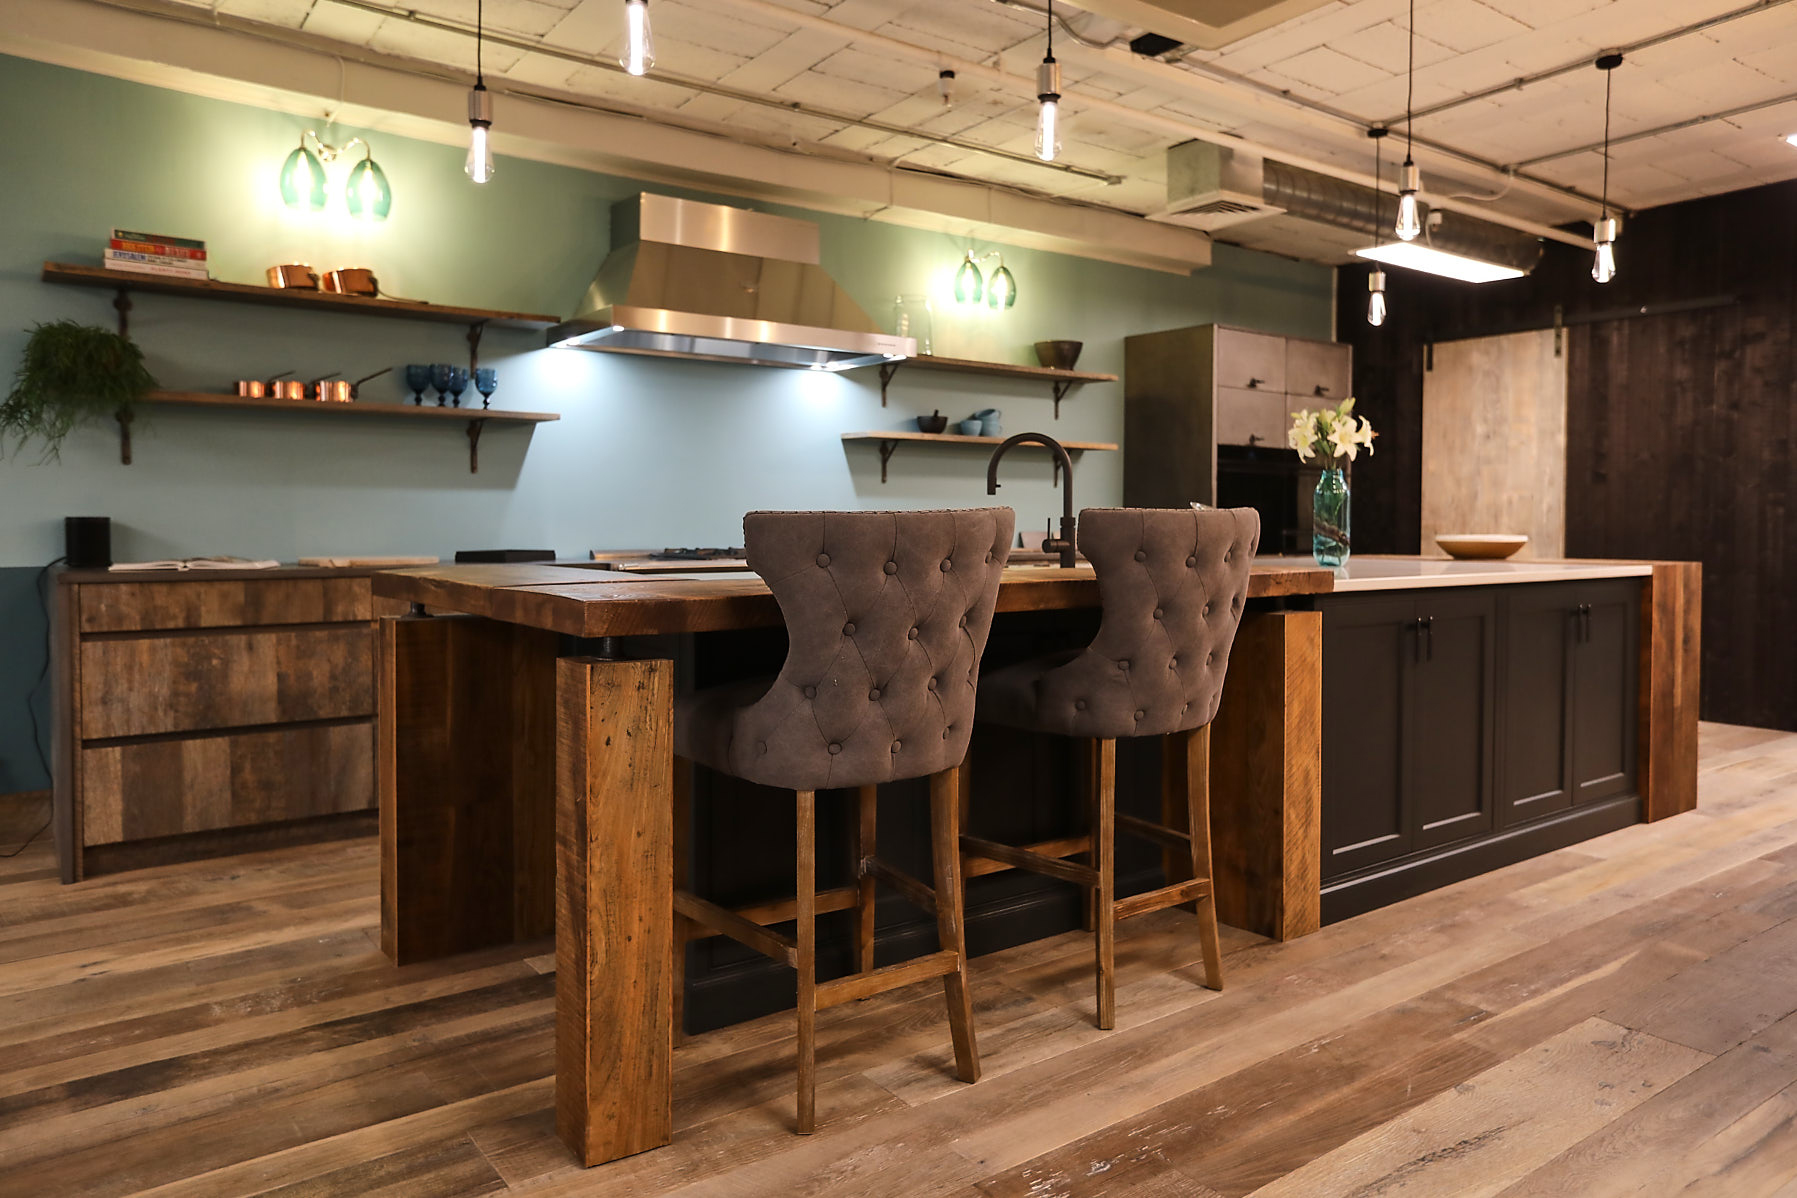 upholstered bar stools under bespoke rustic breakfast bar